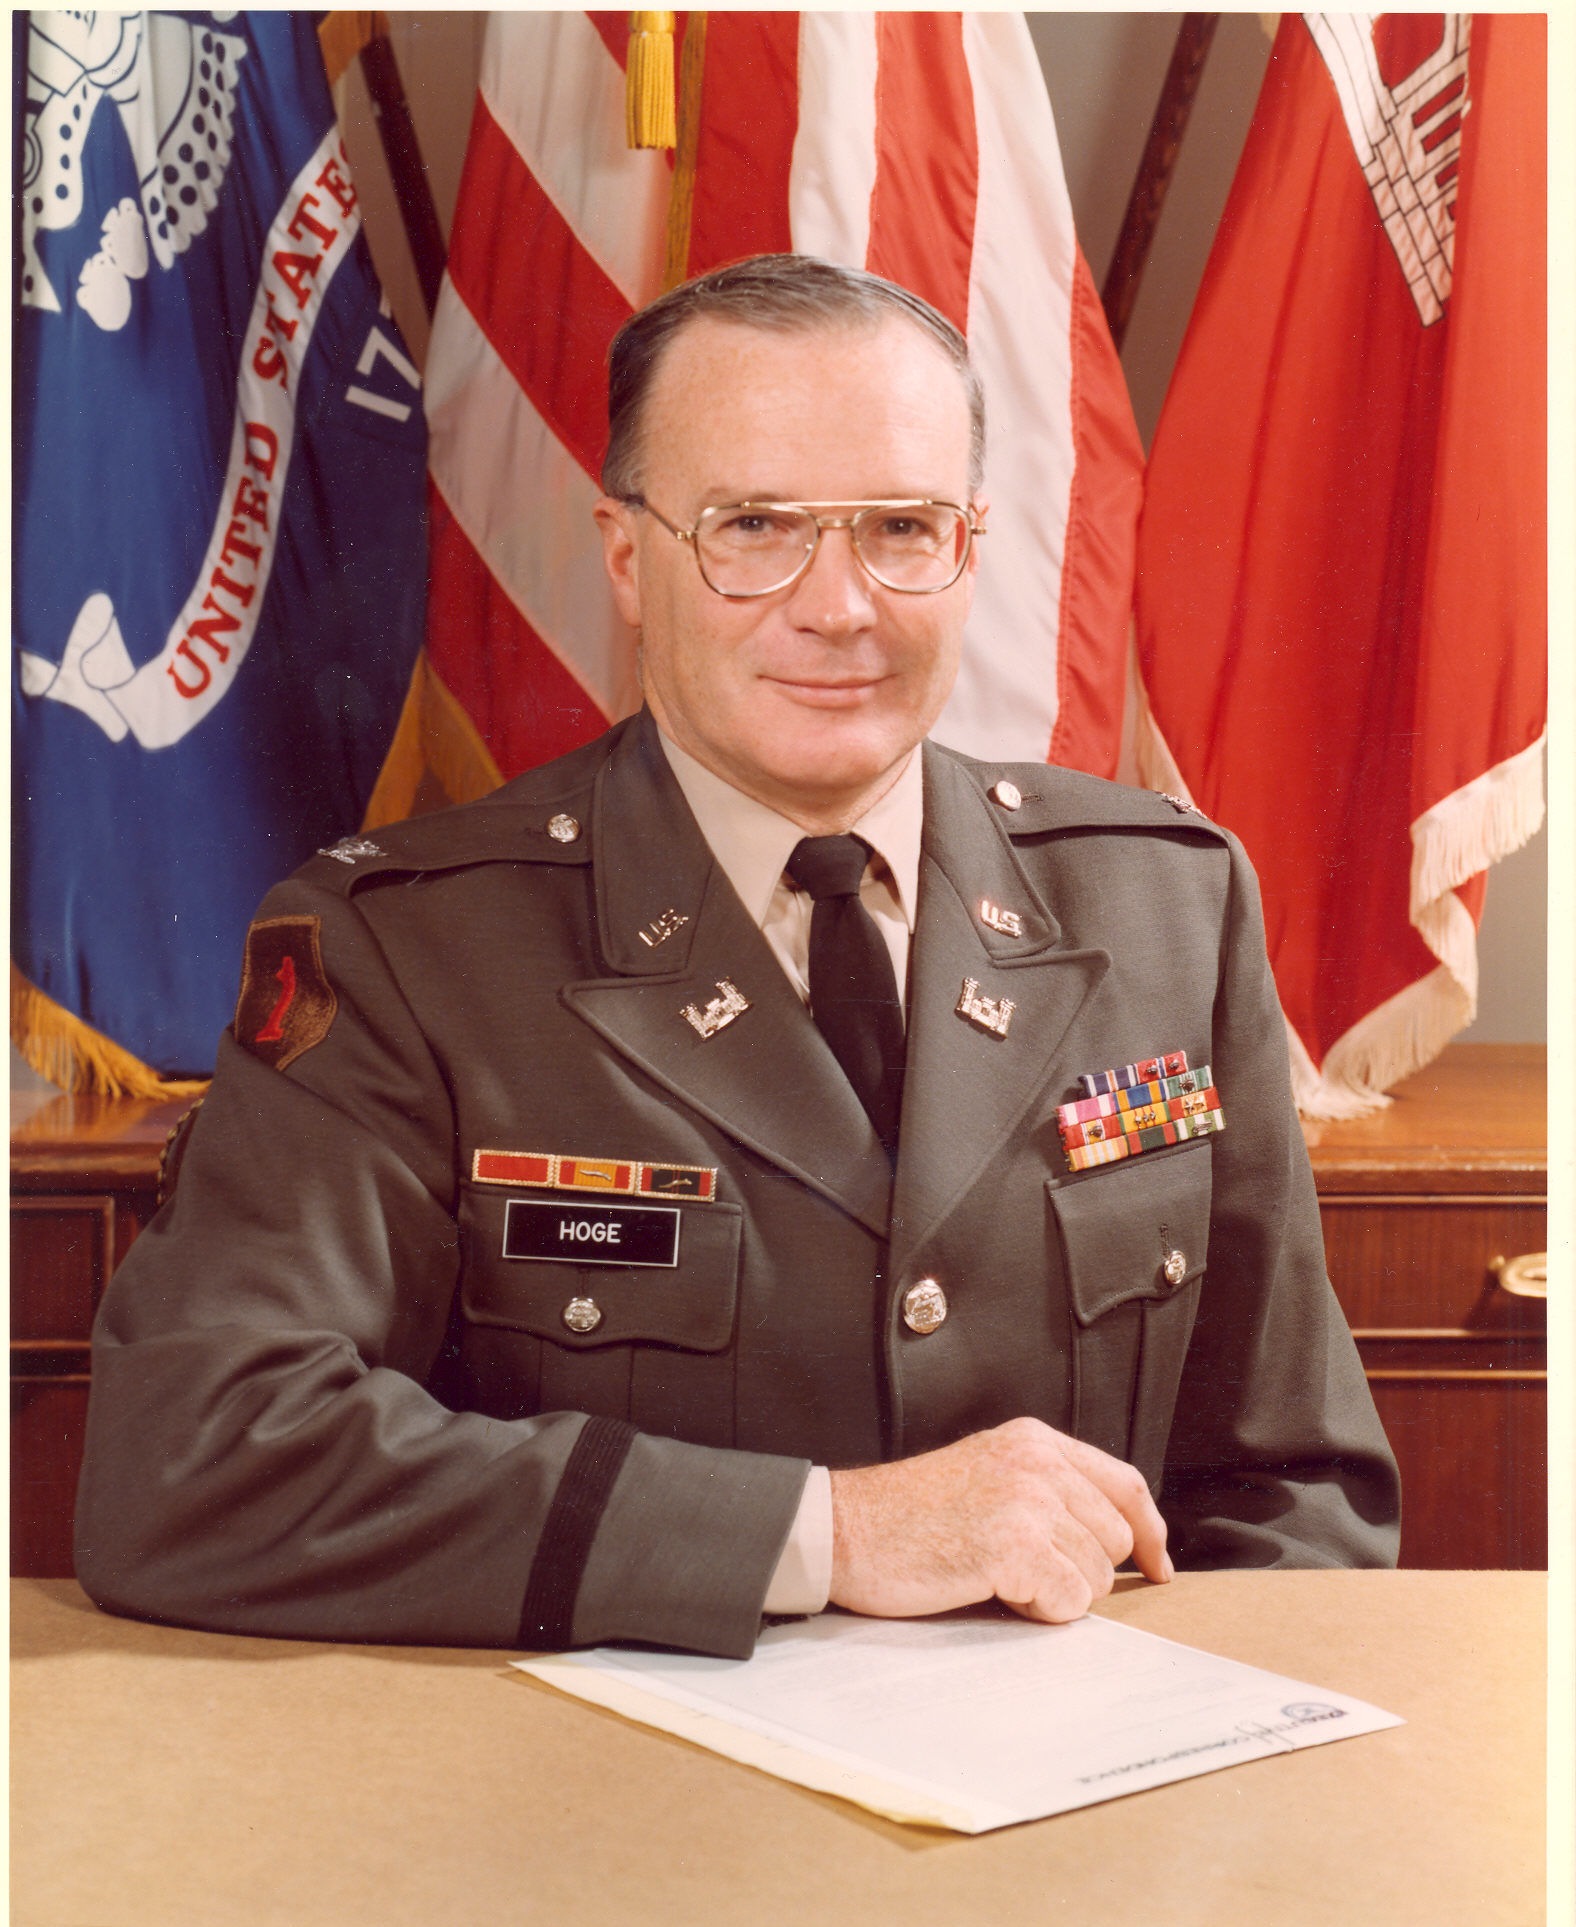 COL Philip R. Hoge Command & Director ETL 1977-1978